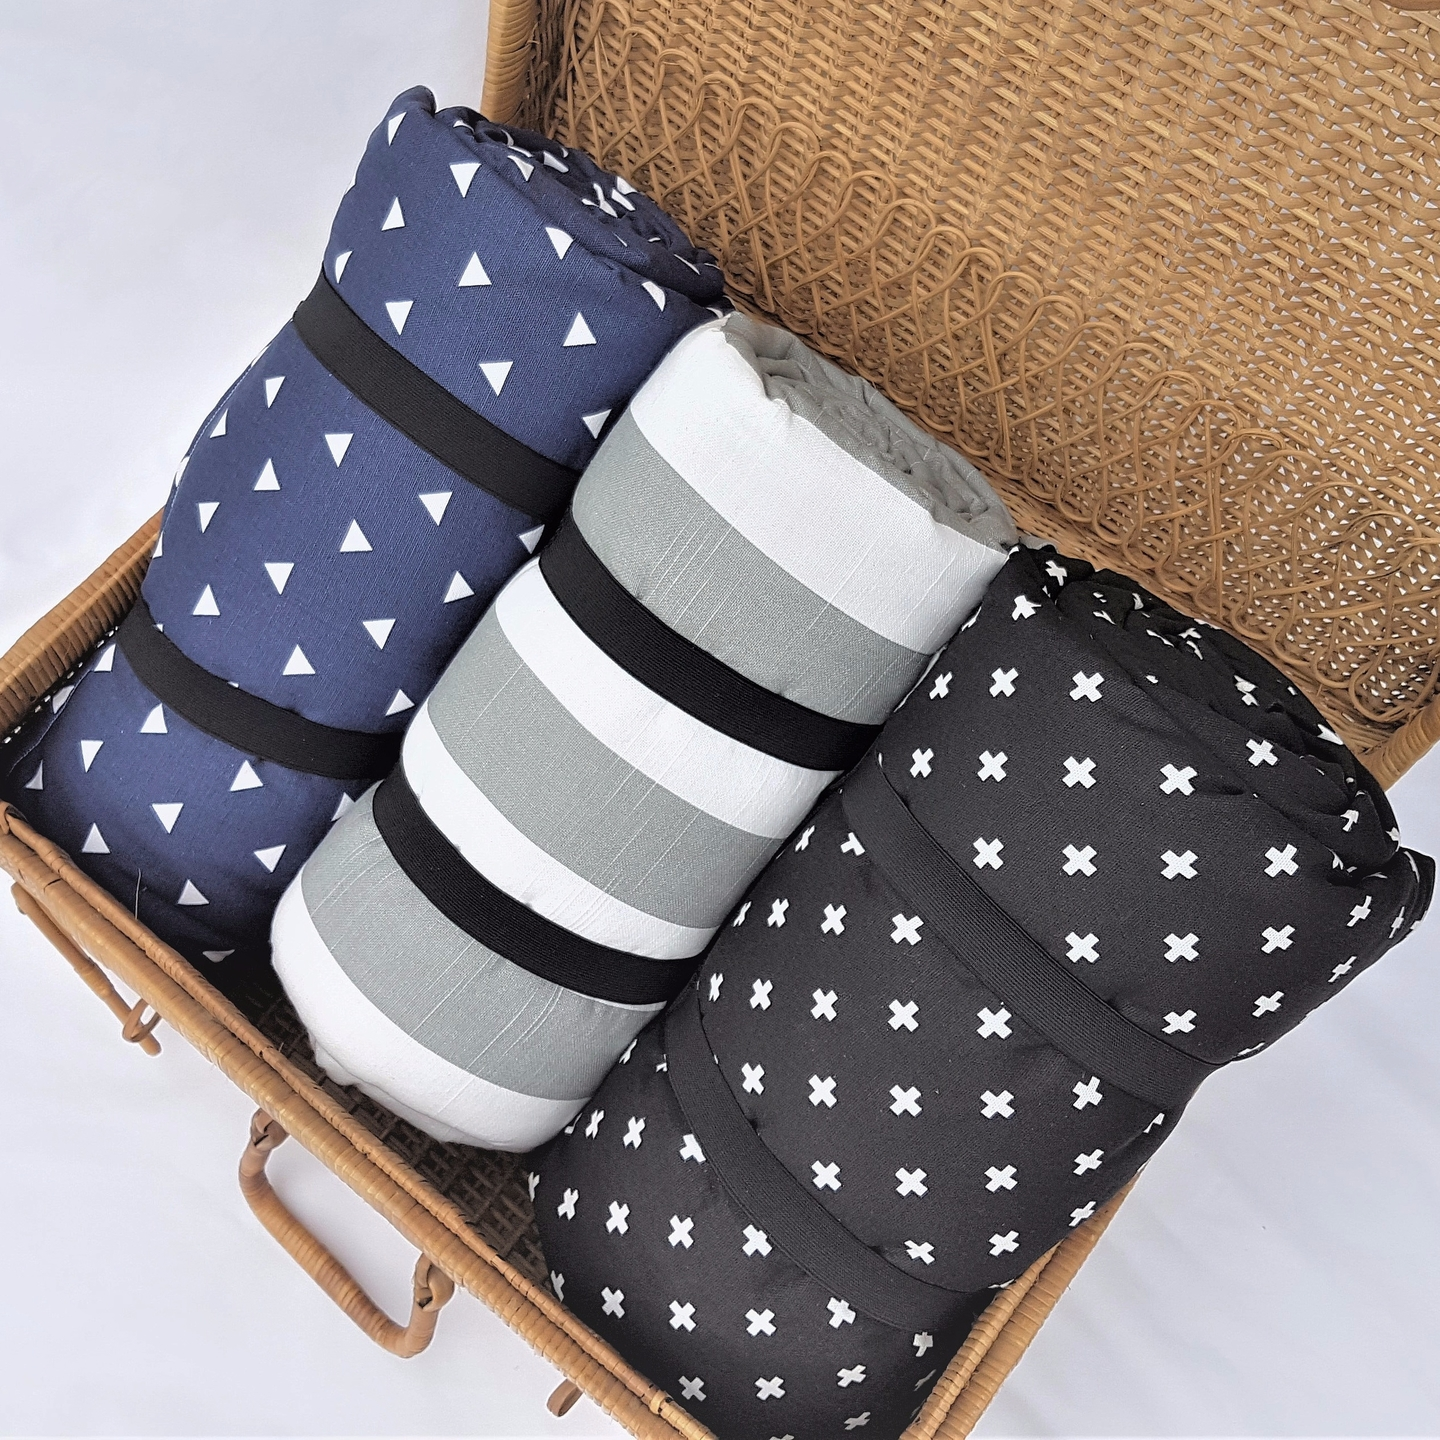 Emby Love Picnic Blanket (@embyloveblankets) Cover Image